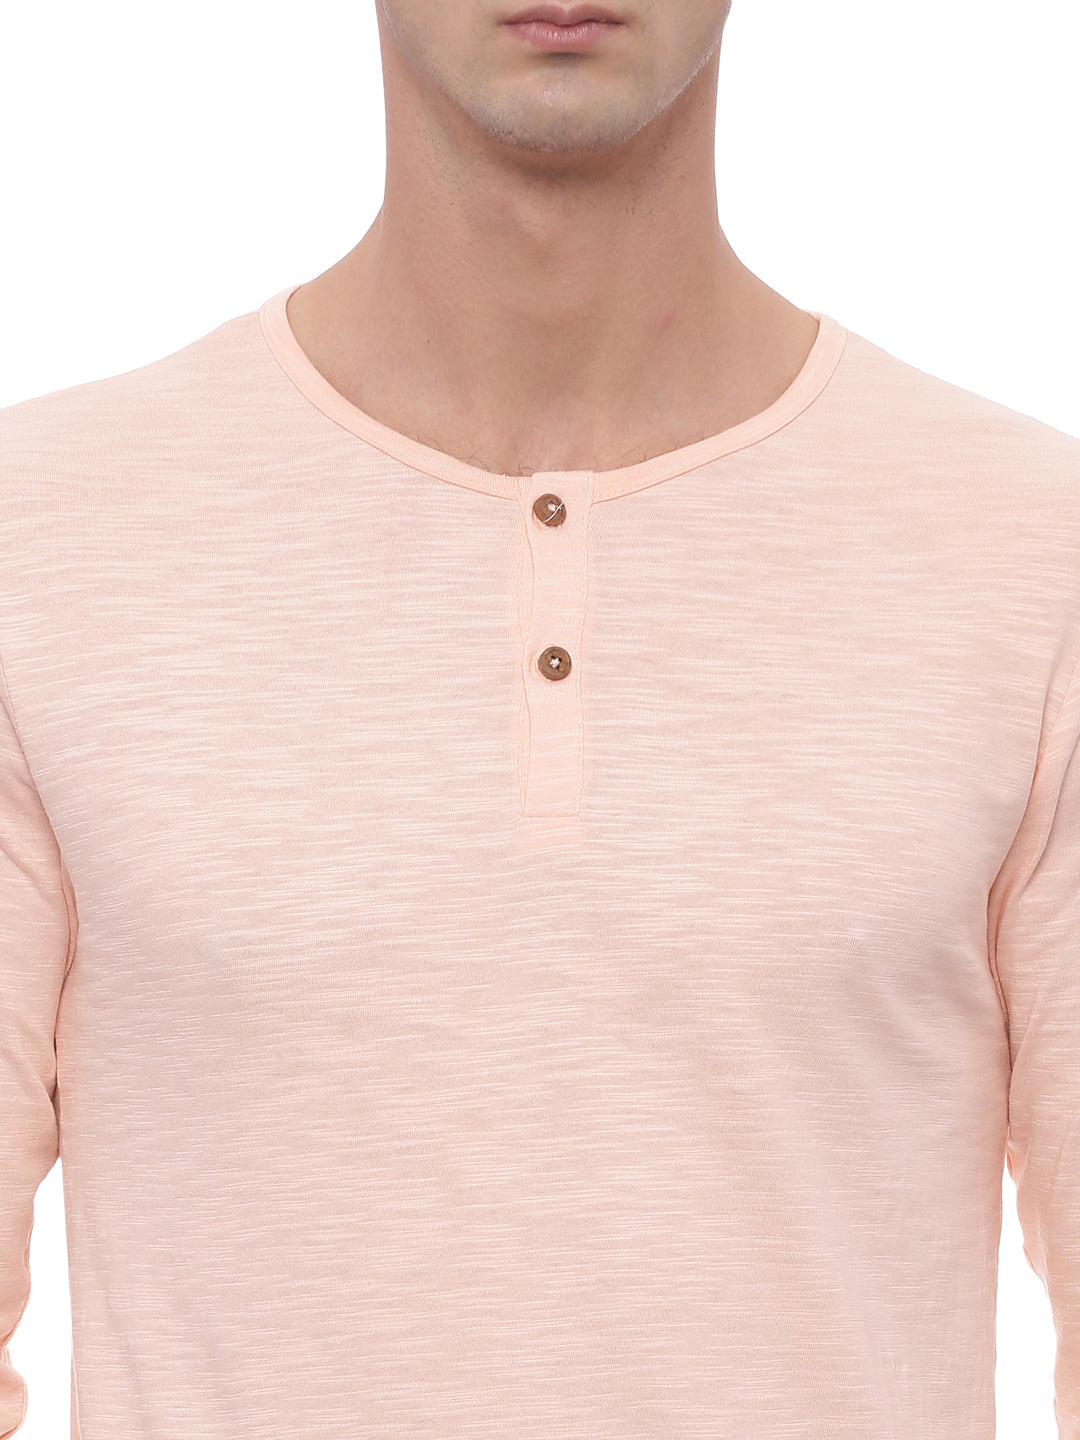 The Long Sleeve Coral Pink Henley